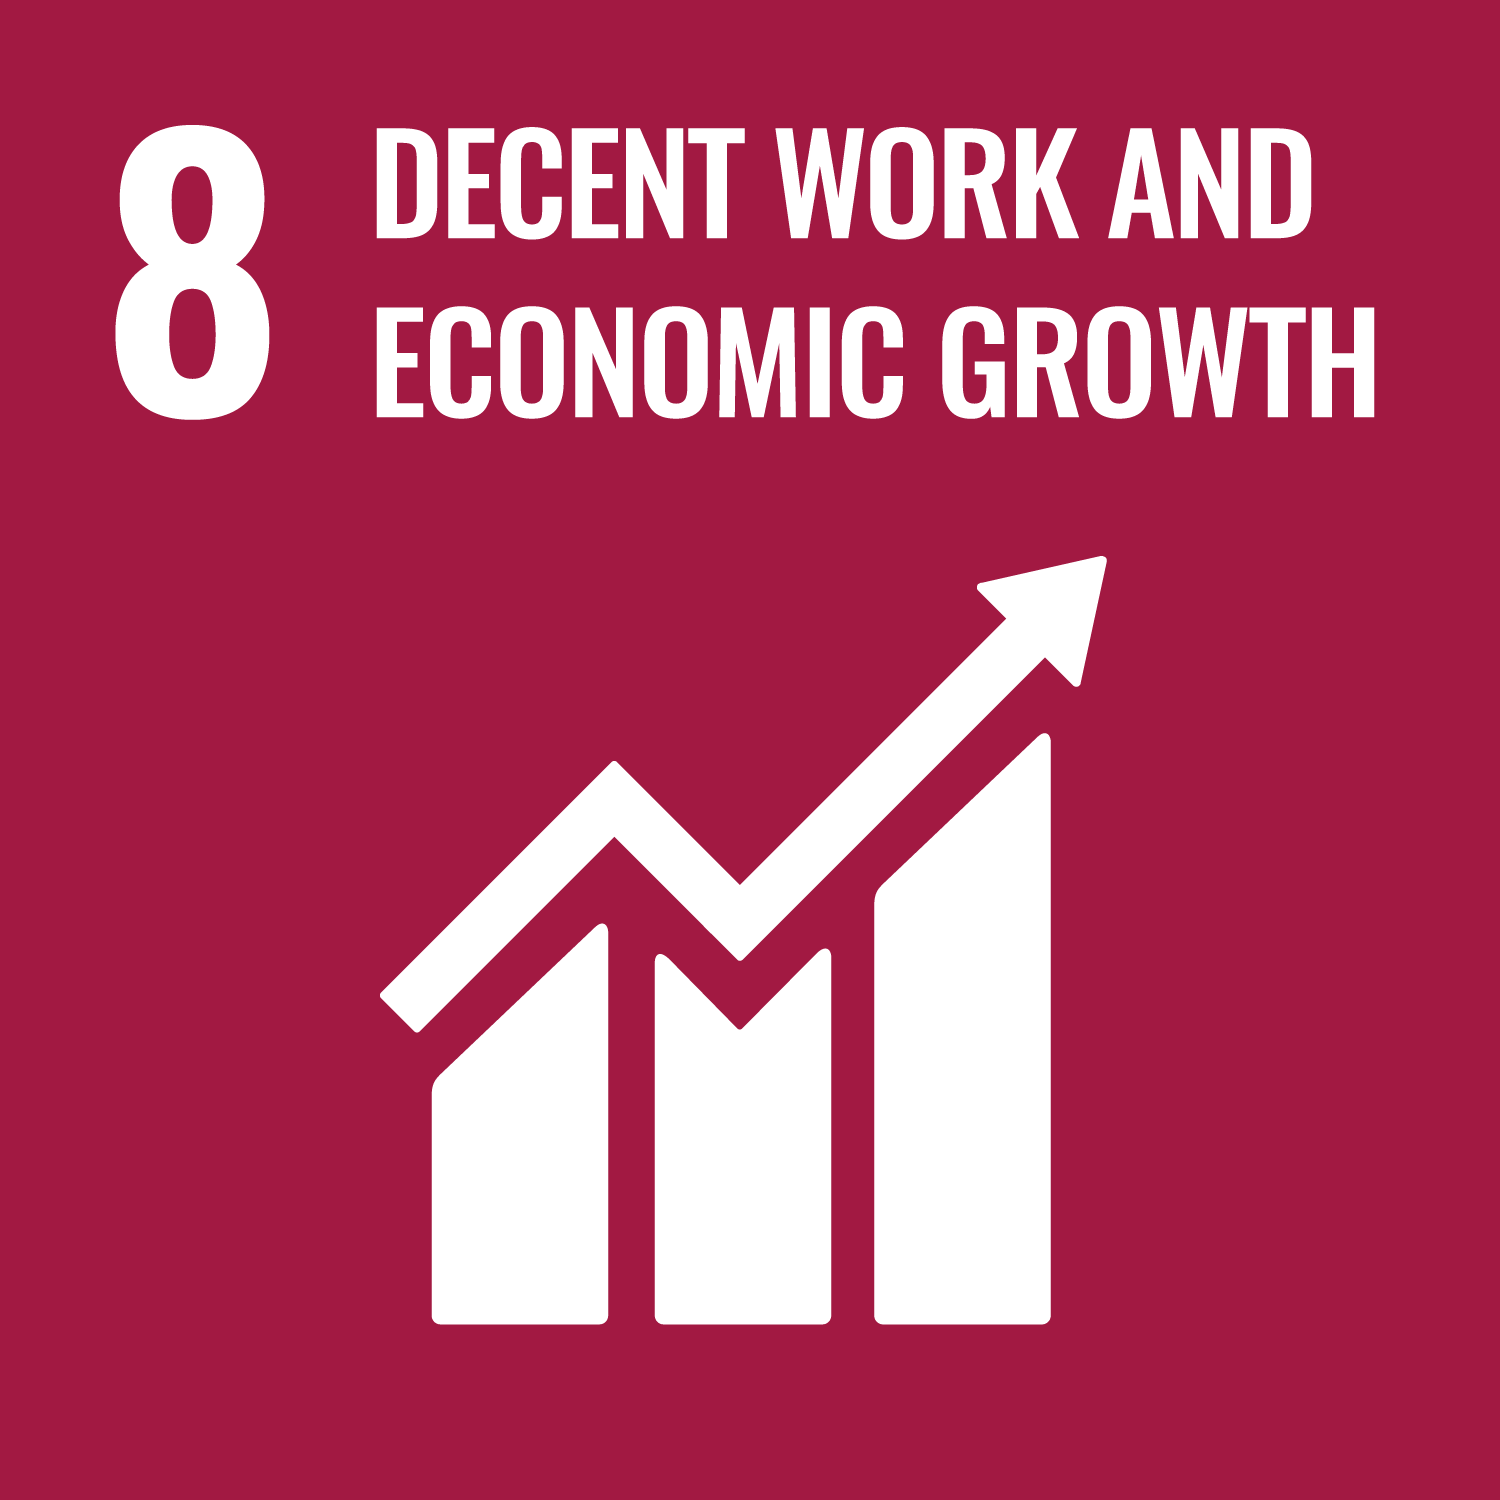 8. Decent work and economic growth We believe that sustainable, inclusive economic growth is the driver for progress. By creating decent jobs we can improve living standards which enable us to develop new innovative and sustainable houses. How we target this SDG? By creating decent jobs we can improve living standards which enable us to develop new innovative and sustainable houses that can be deployed more quickly, adaptably and intelligently than traditional construction, contributing to a sustainably-driven global construction sector.